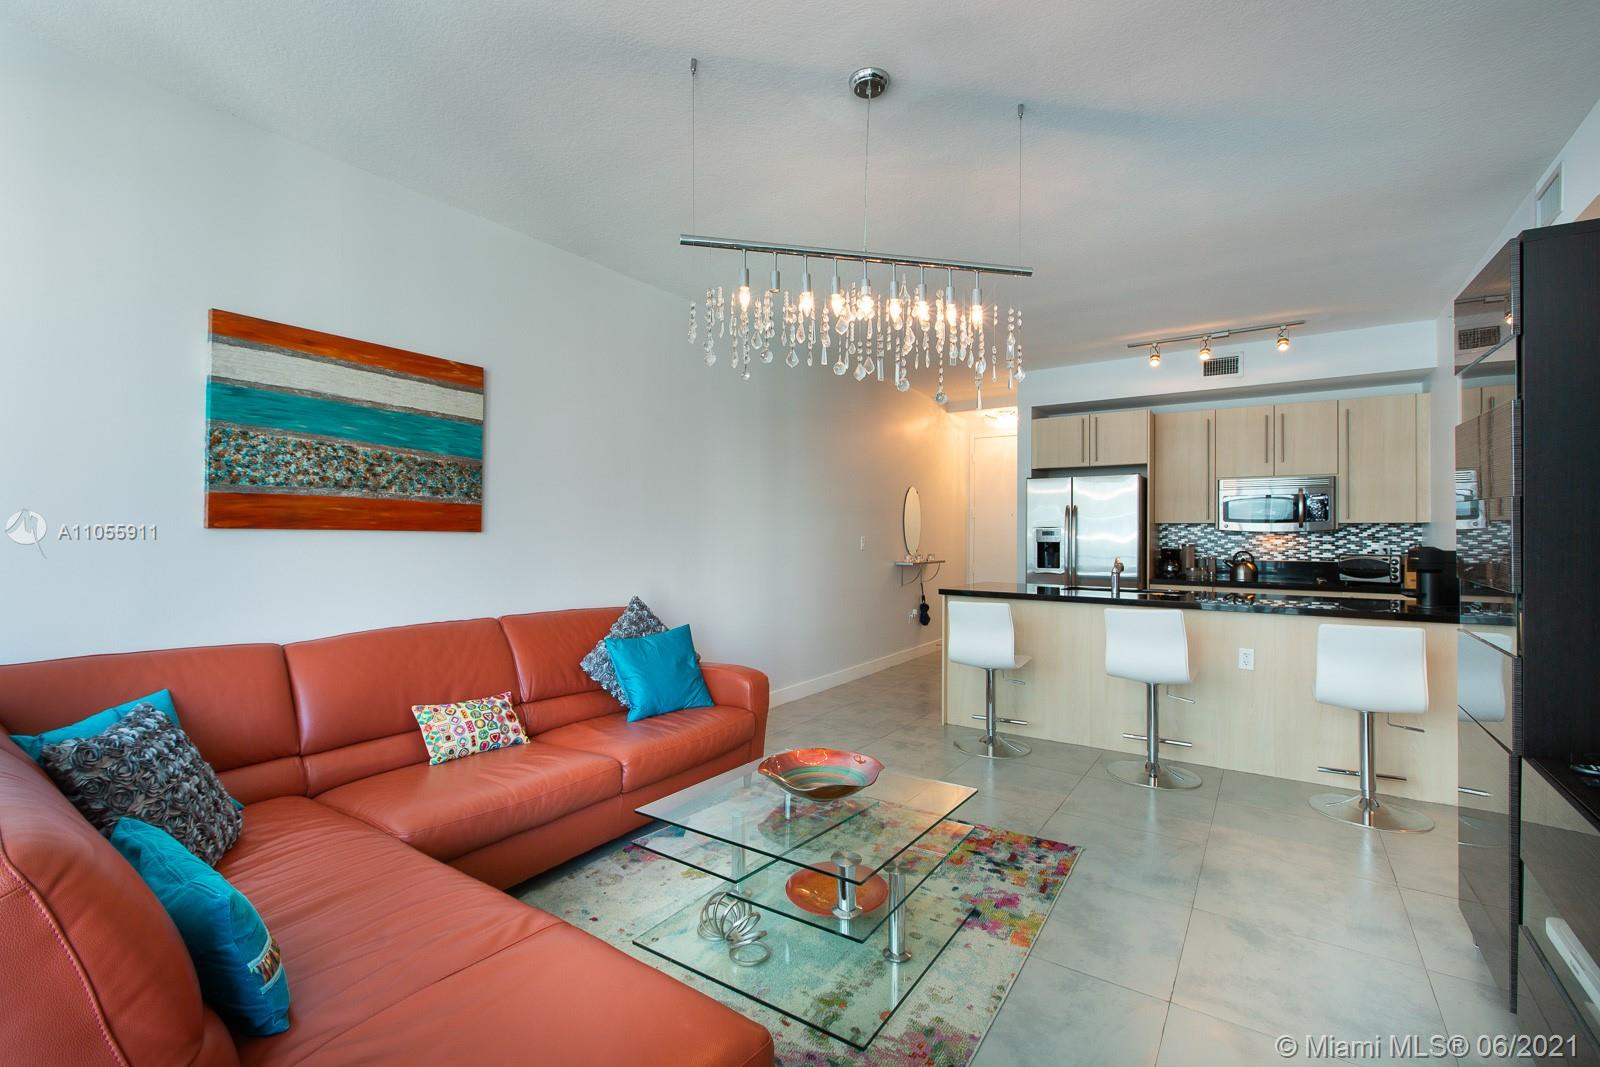 Axis on Brickell North Tower #3215-N - 1111 SW 1st Ave #3215-N, Miami, FL 33130